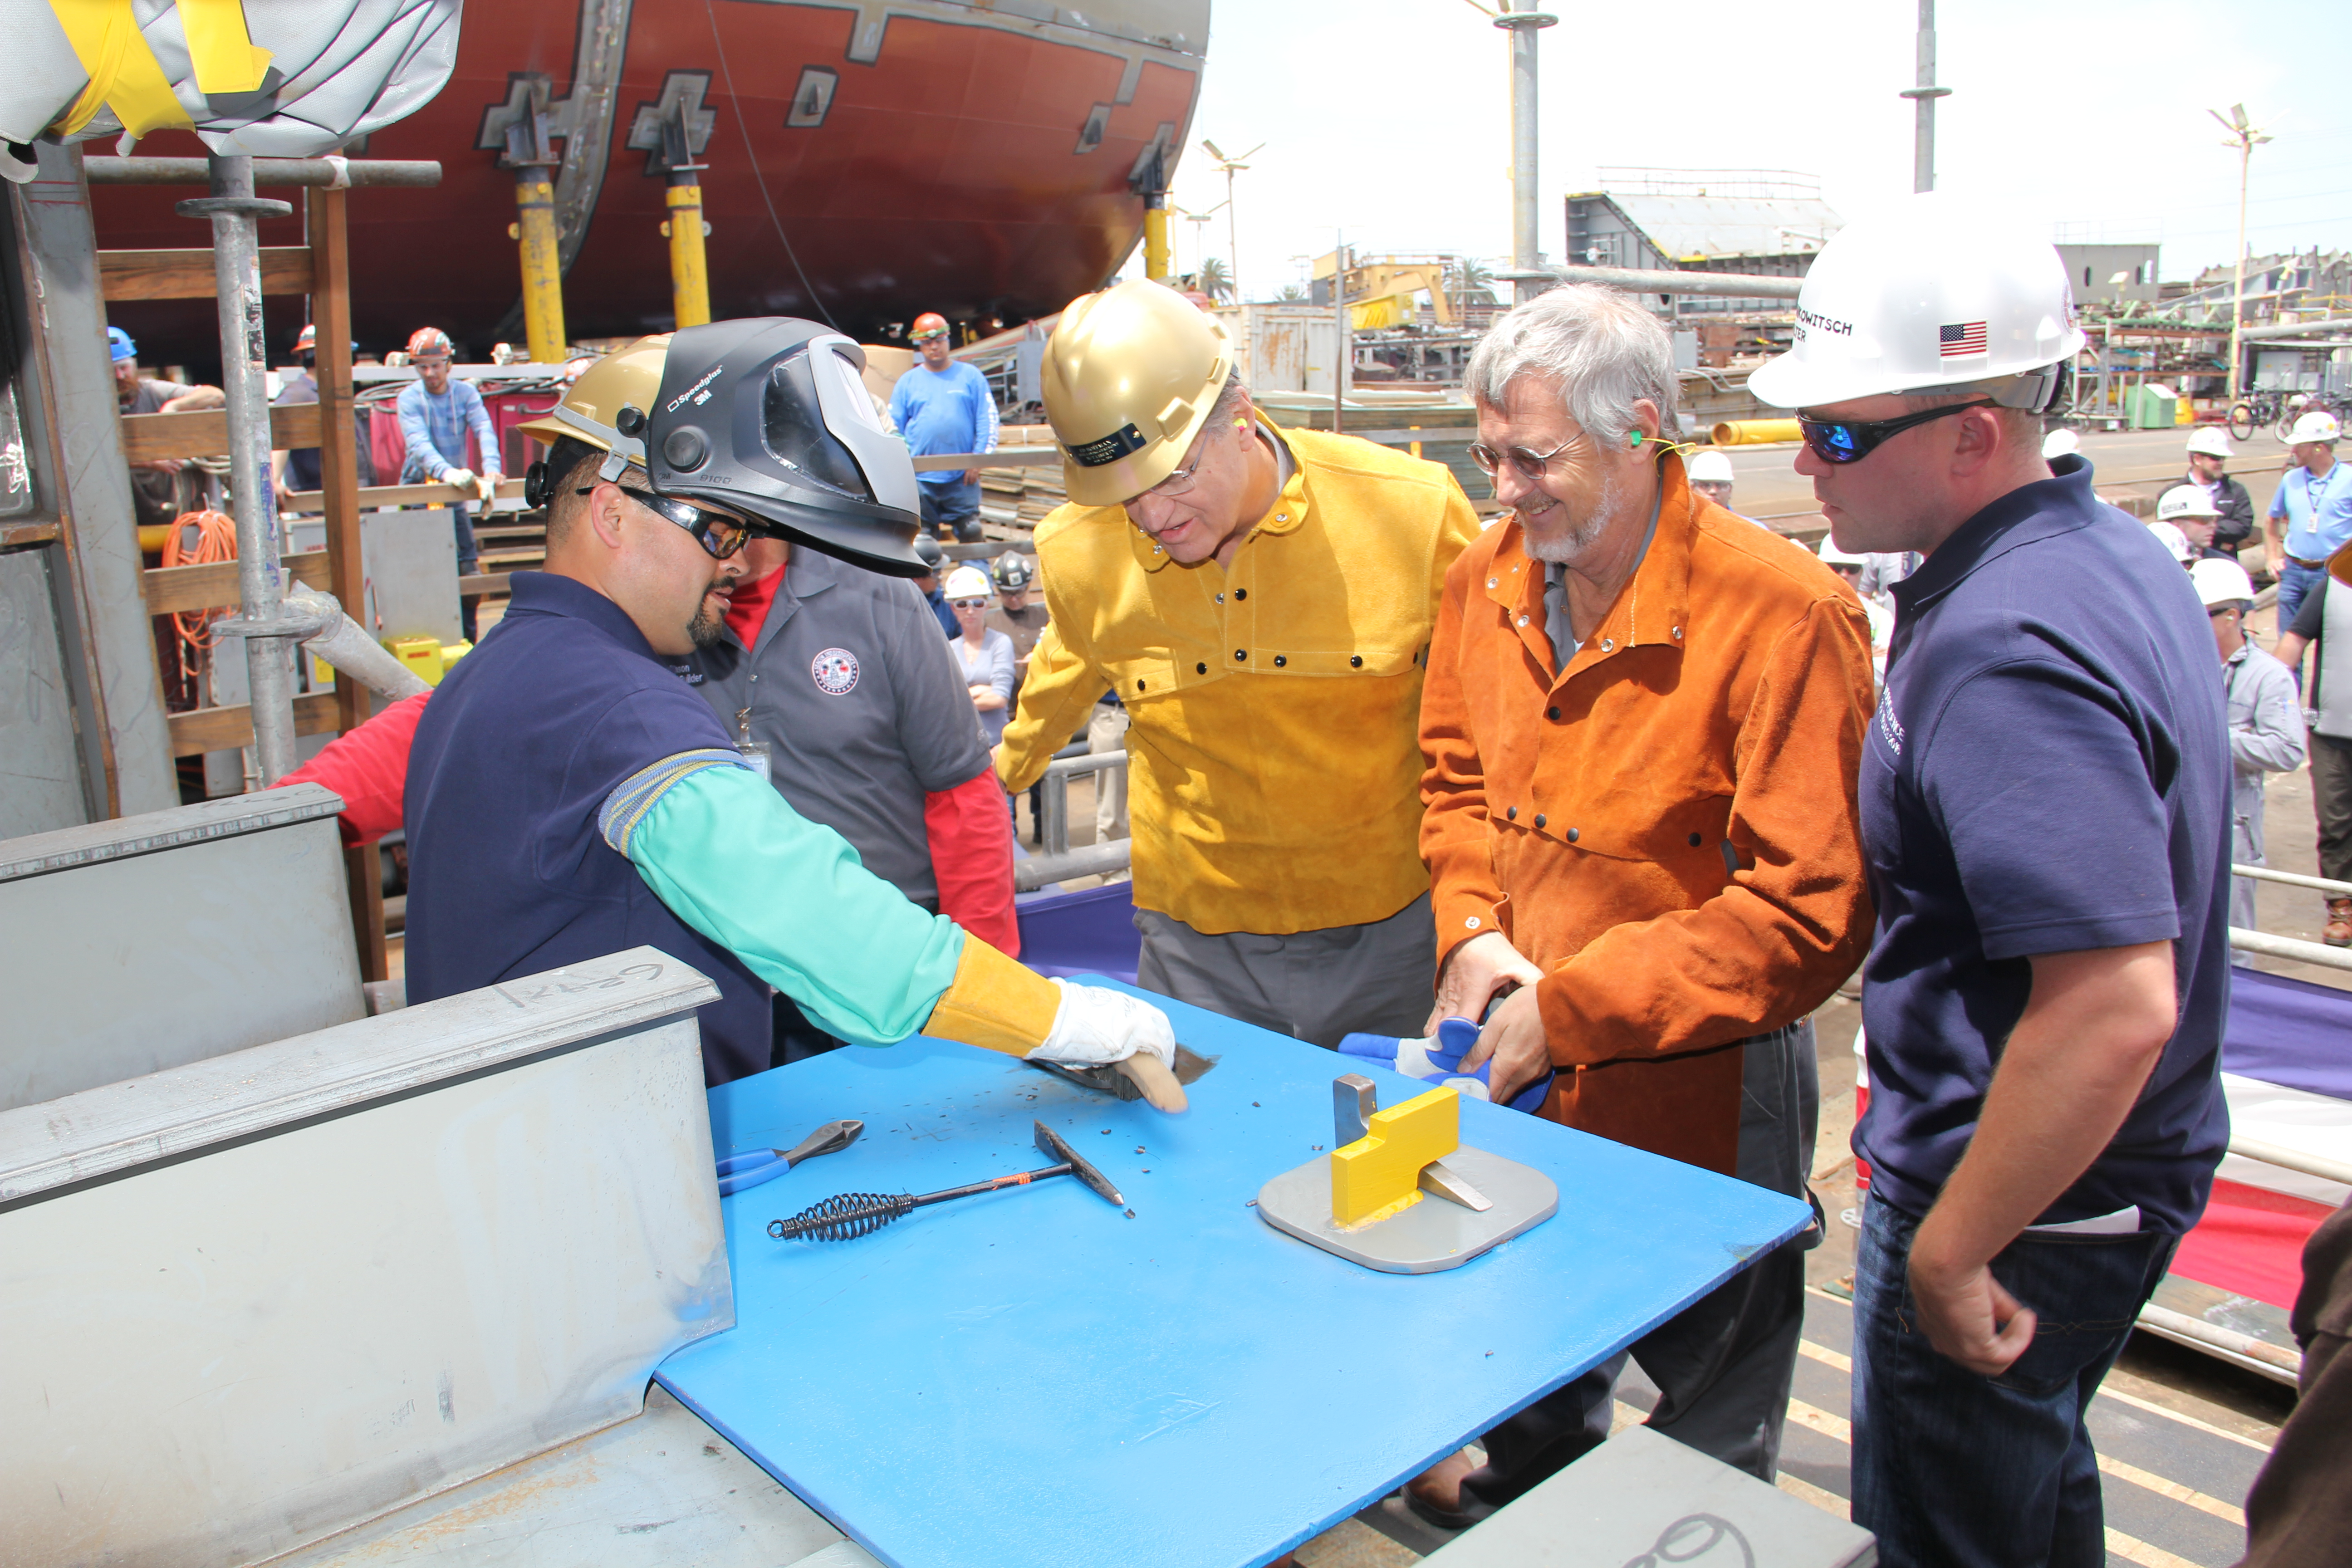 As honorees, Tom Denning, Ed Hoffman, and Tom Sofyanos — all representatives of SEA-Vista LLC — welded their initials into the keel of the ship.